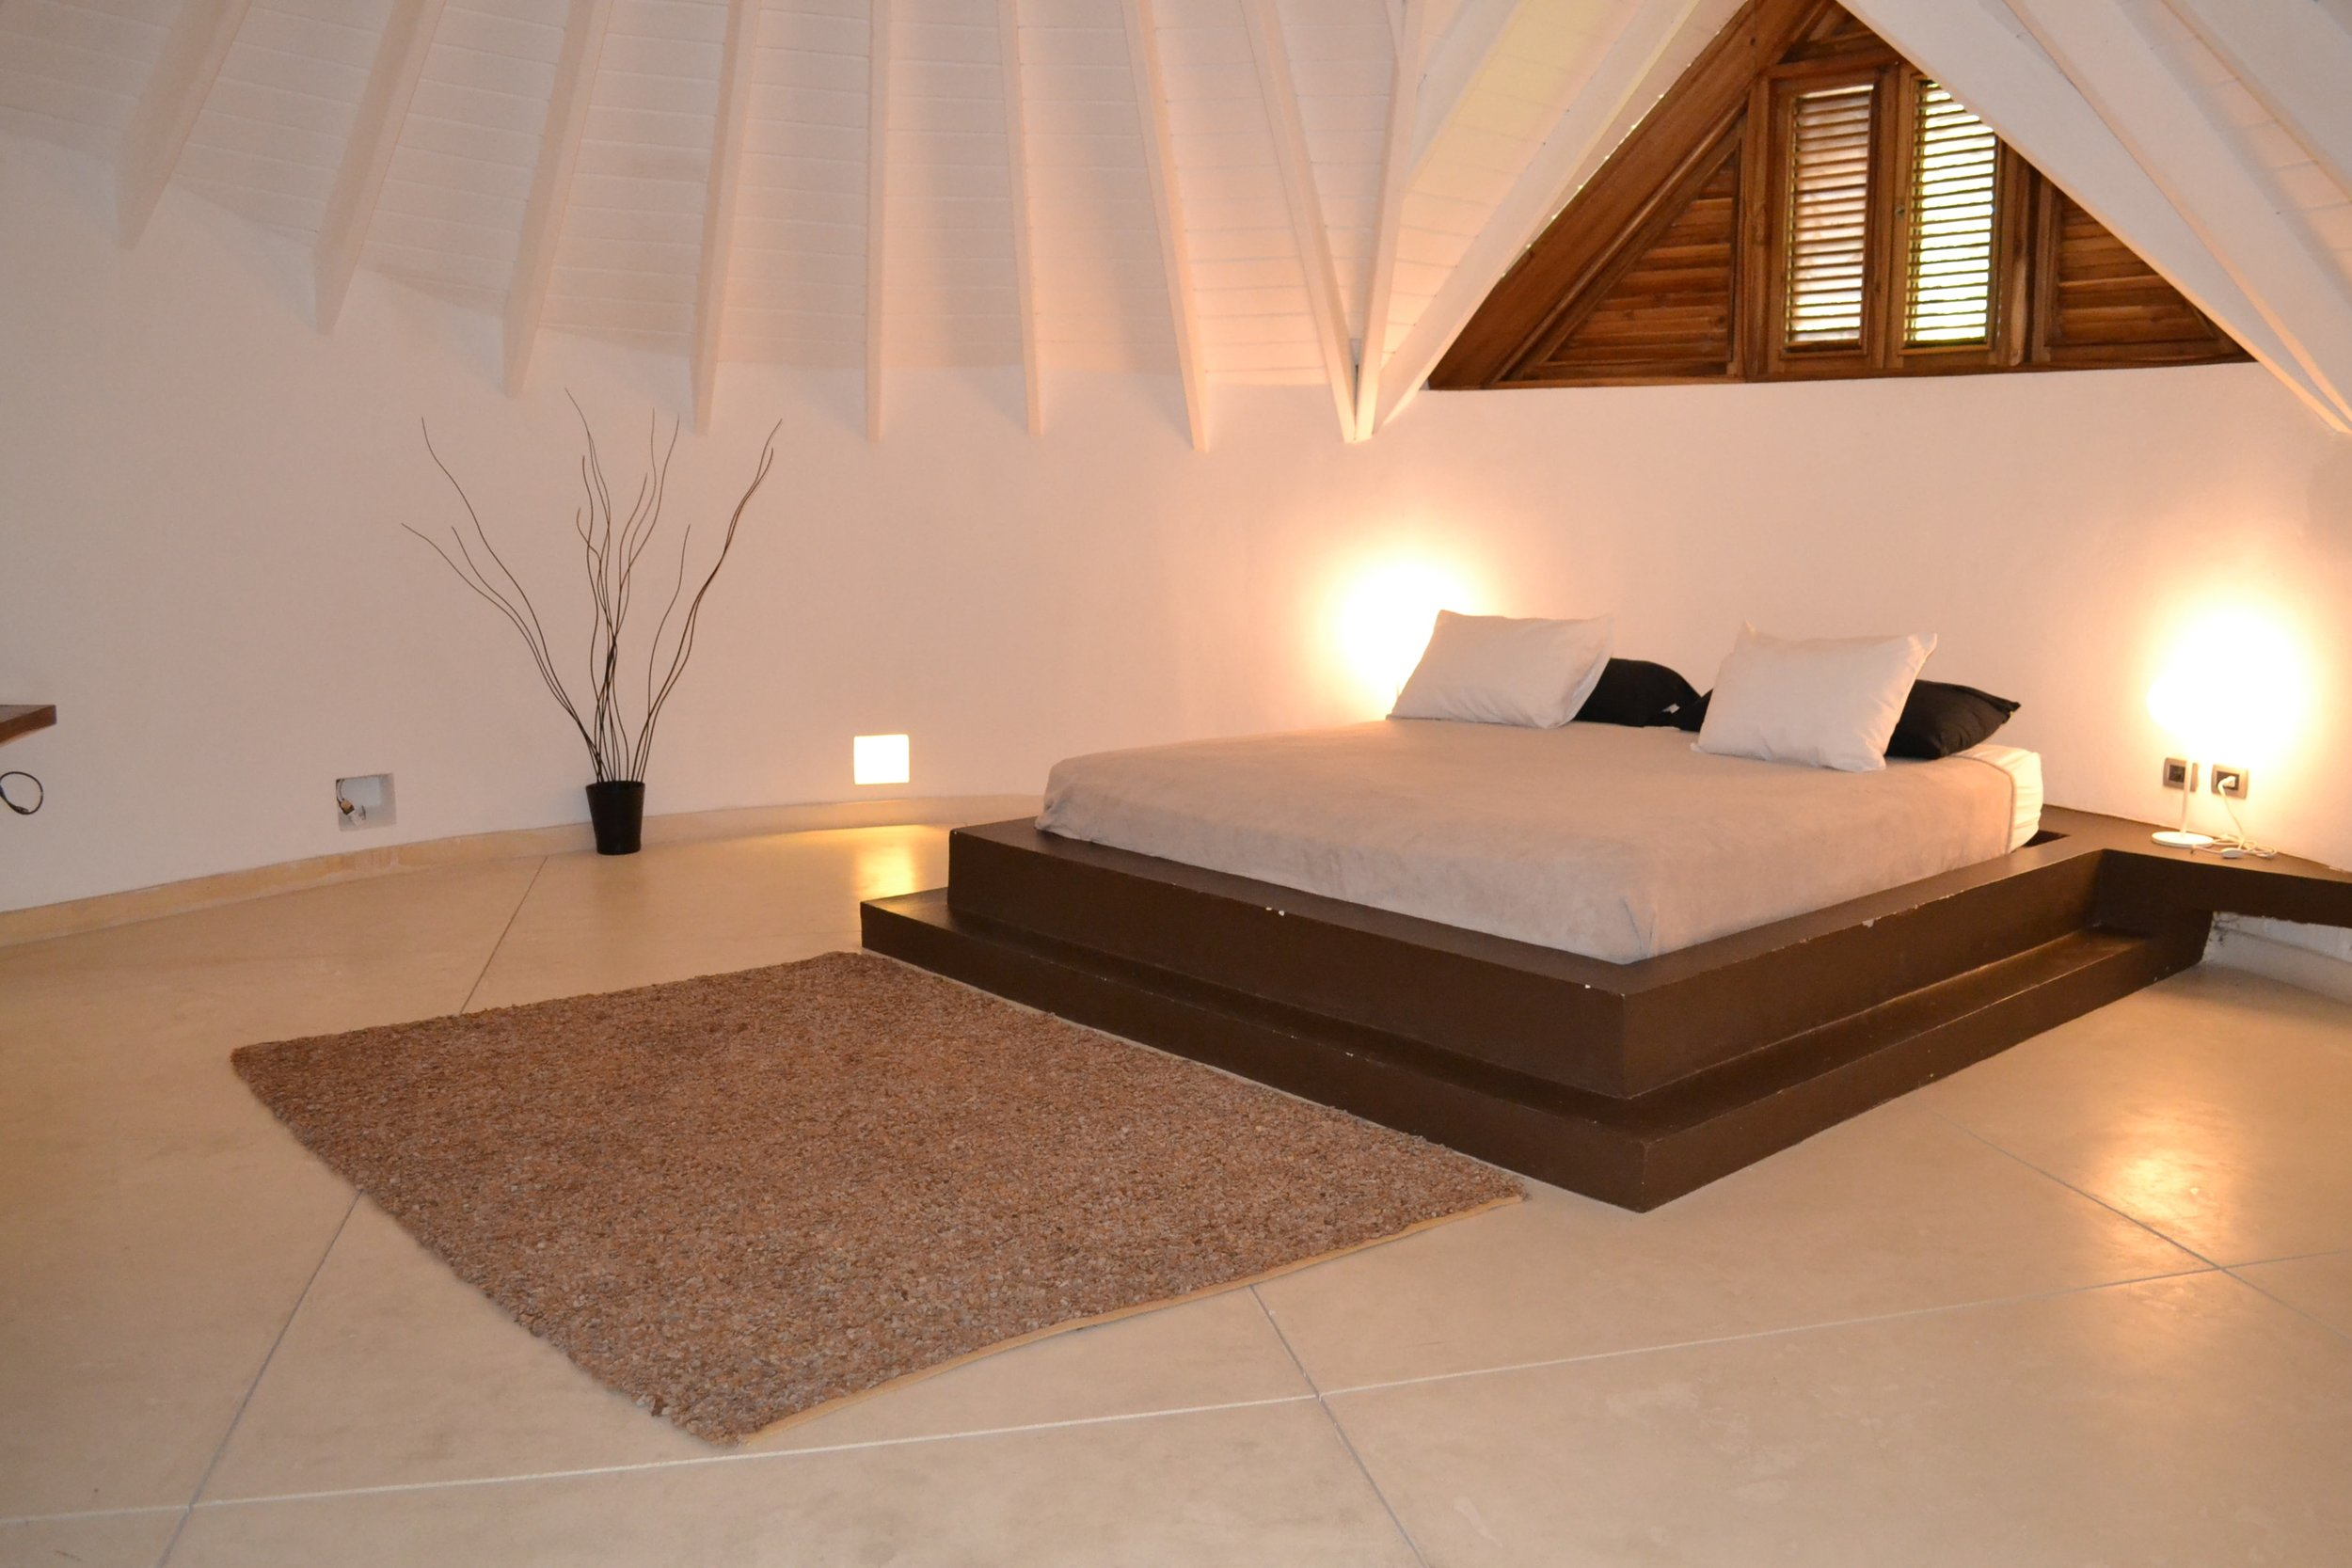 Villa for Sale Las Terrenas - Villa bedroom 10.JPG